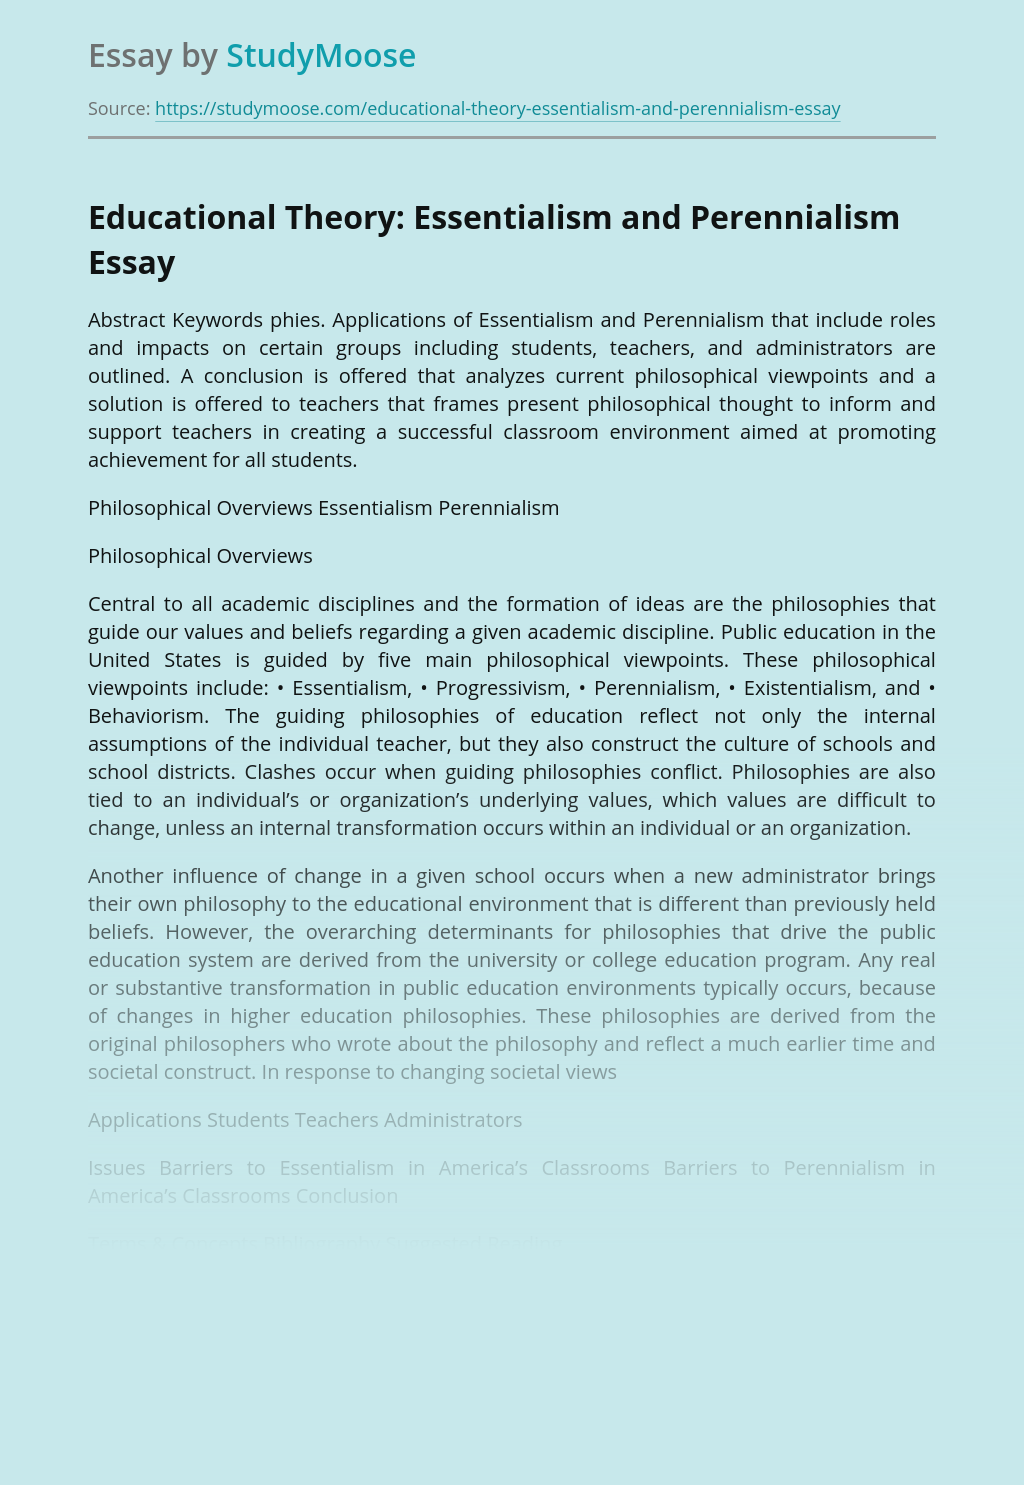 Educational Theory: Essentialism and Perennialism